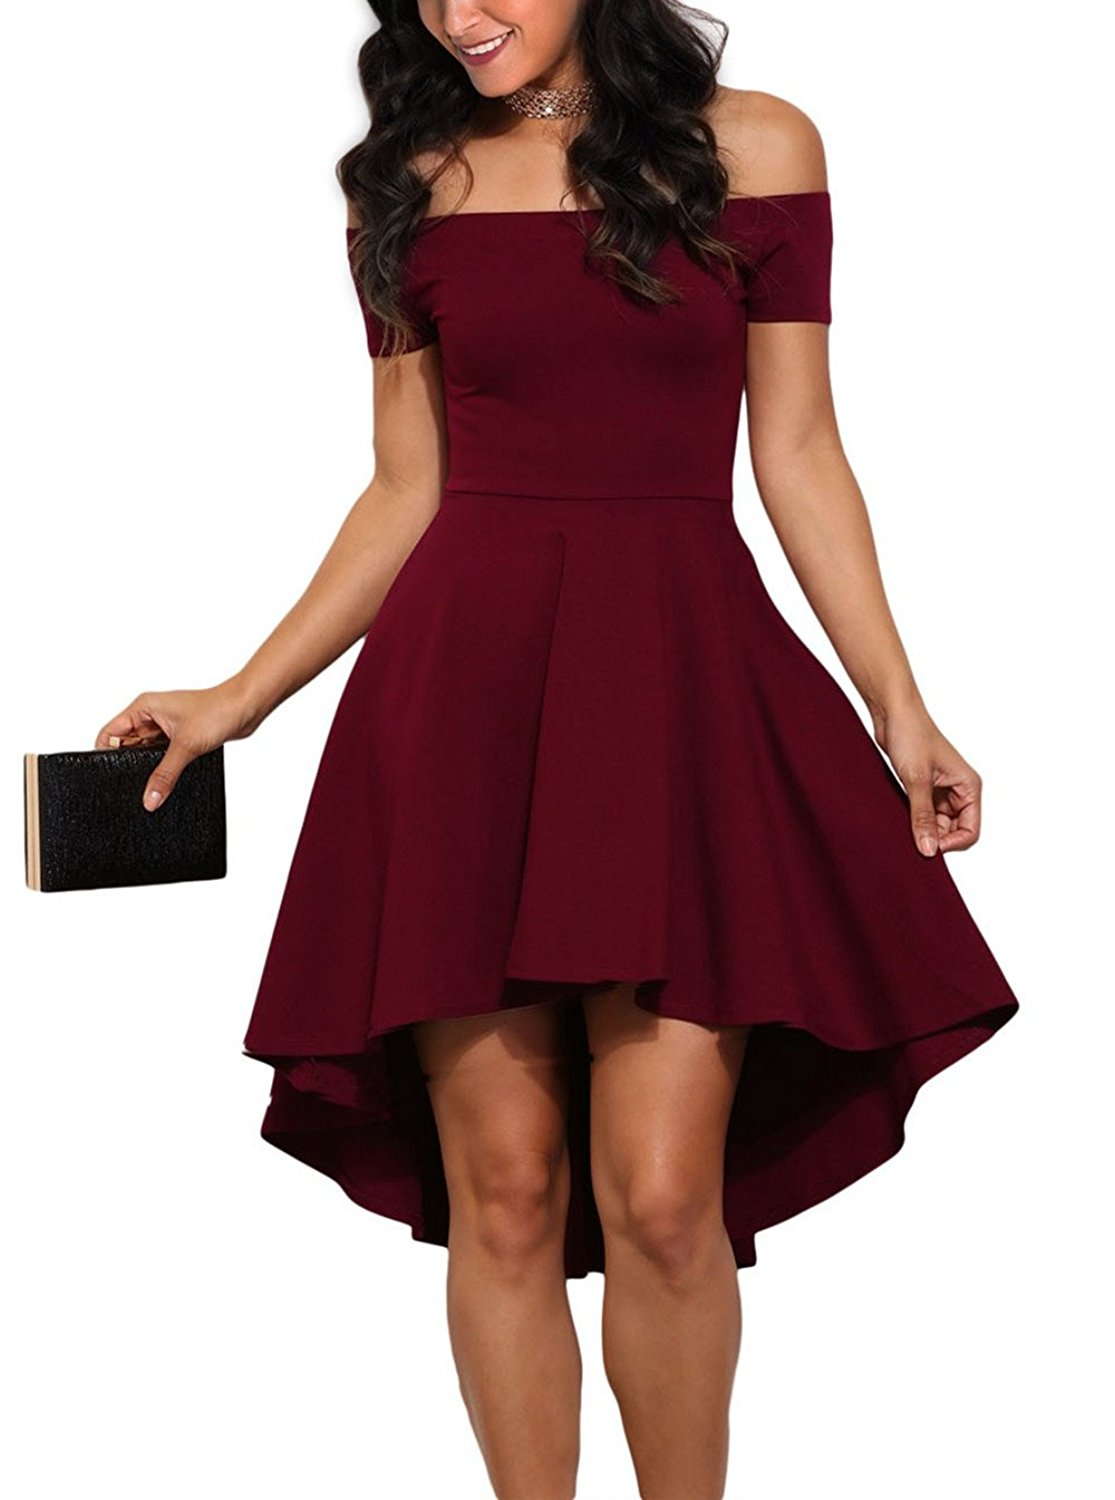 Sidefeel Women Off Shoulder Sleeve High Low Skater Dress Small Wine Red at Amazon Women's Clothing store